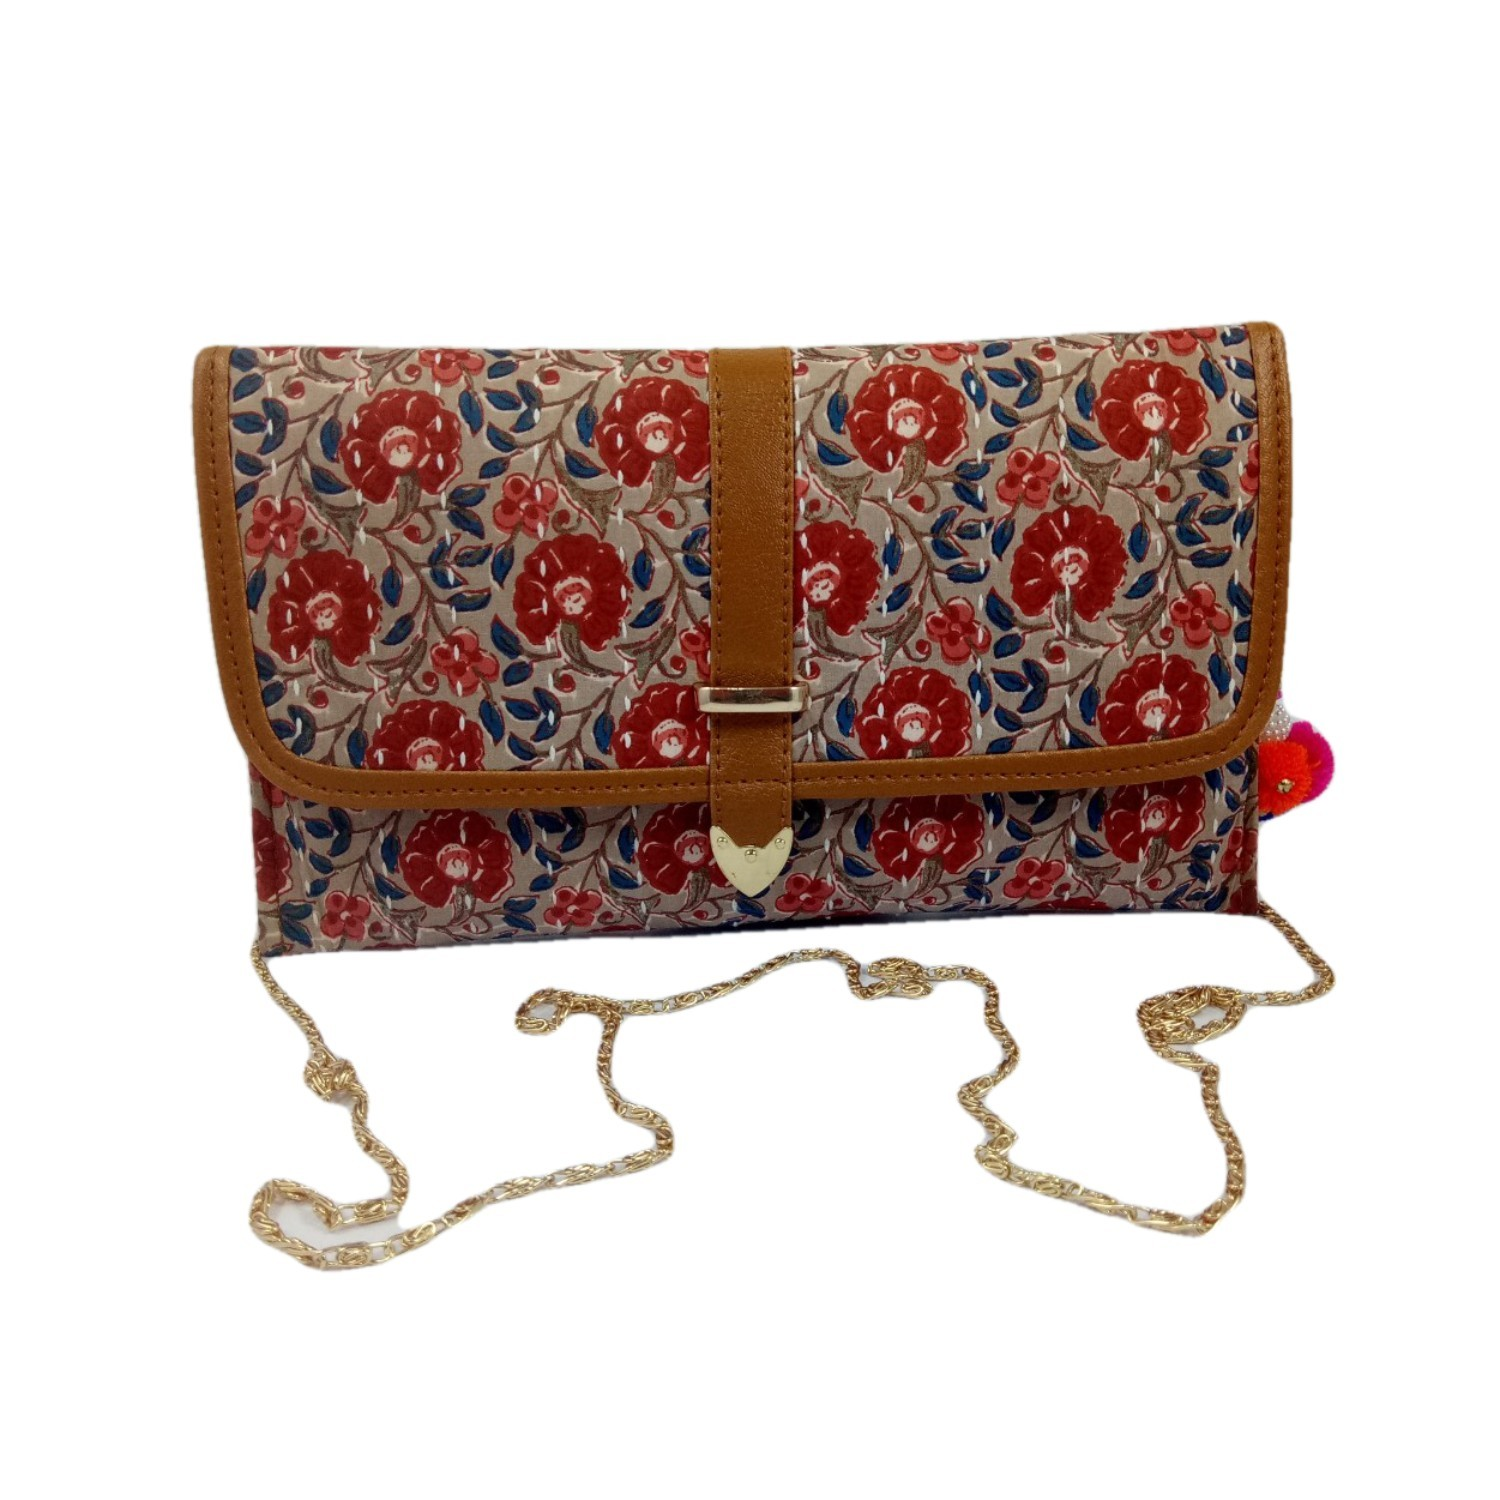 Handmade Excellent Cream Genuine Clutch With Detachable Chain by Women Self Help Groups of Rajasthan